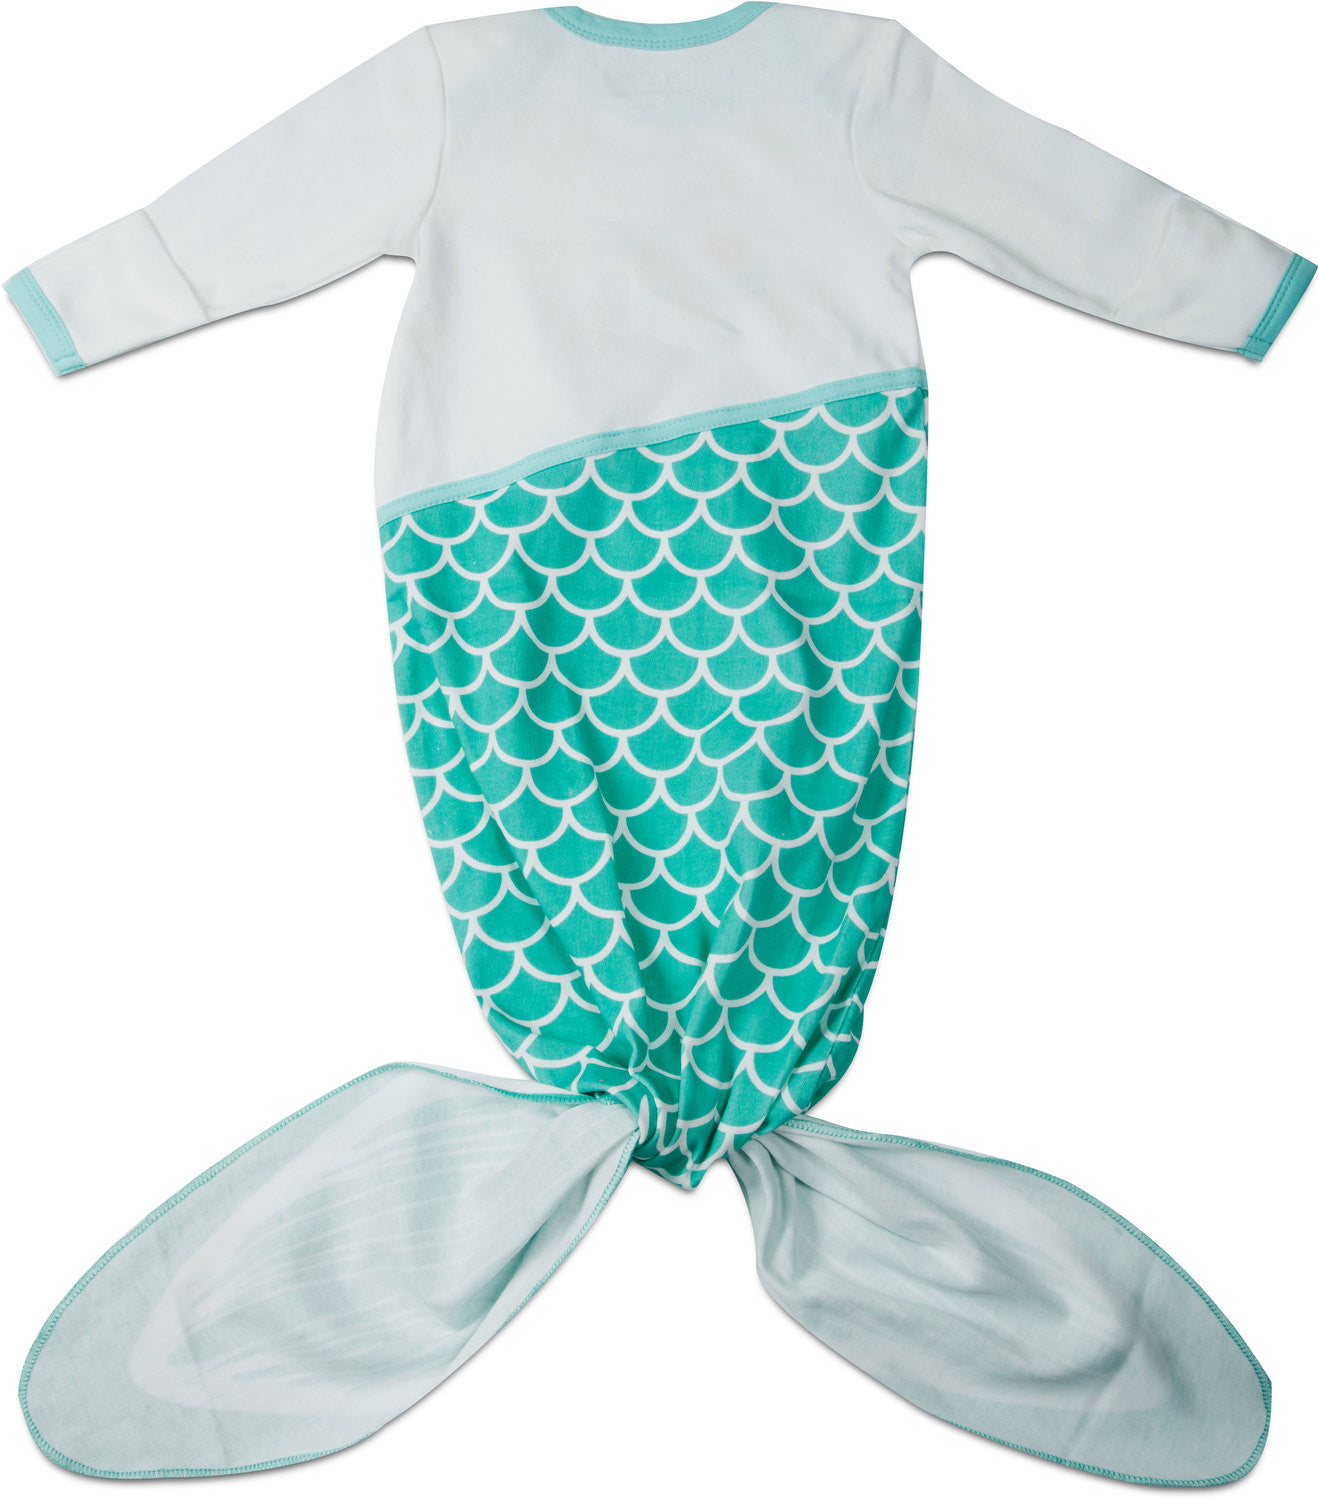 Seafoam Mermaid Knotted Baby esie by Izzy & Owie Giggles Gear